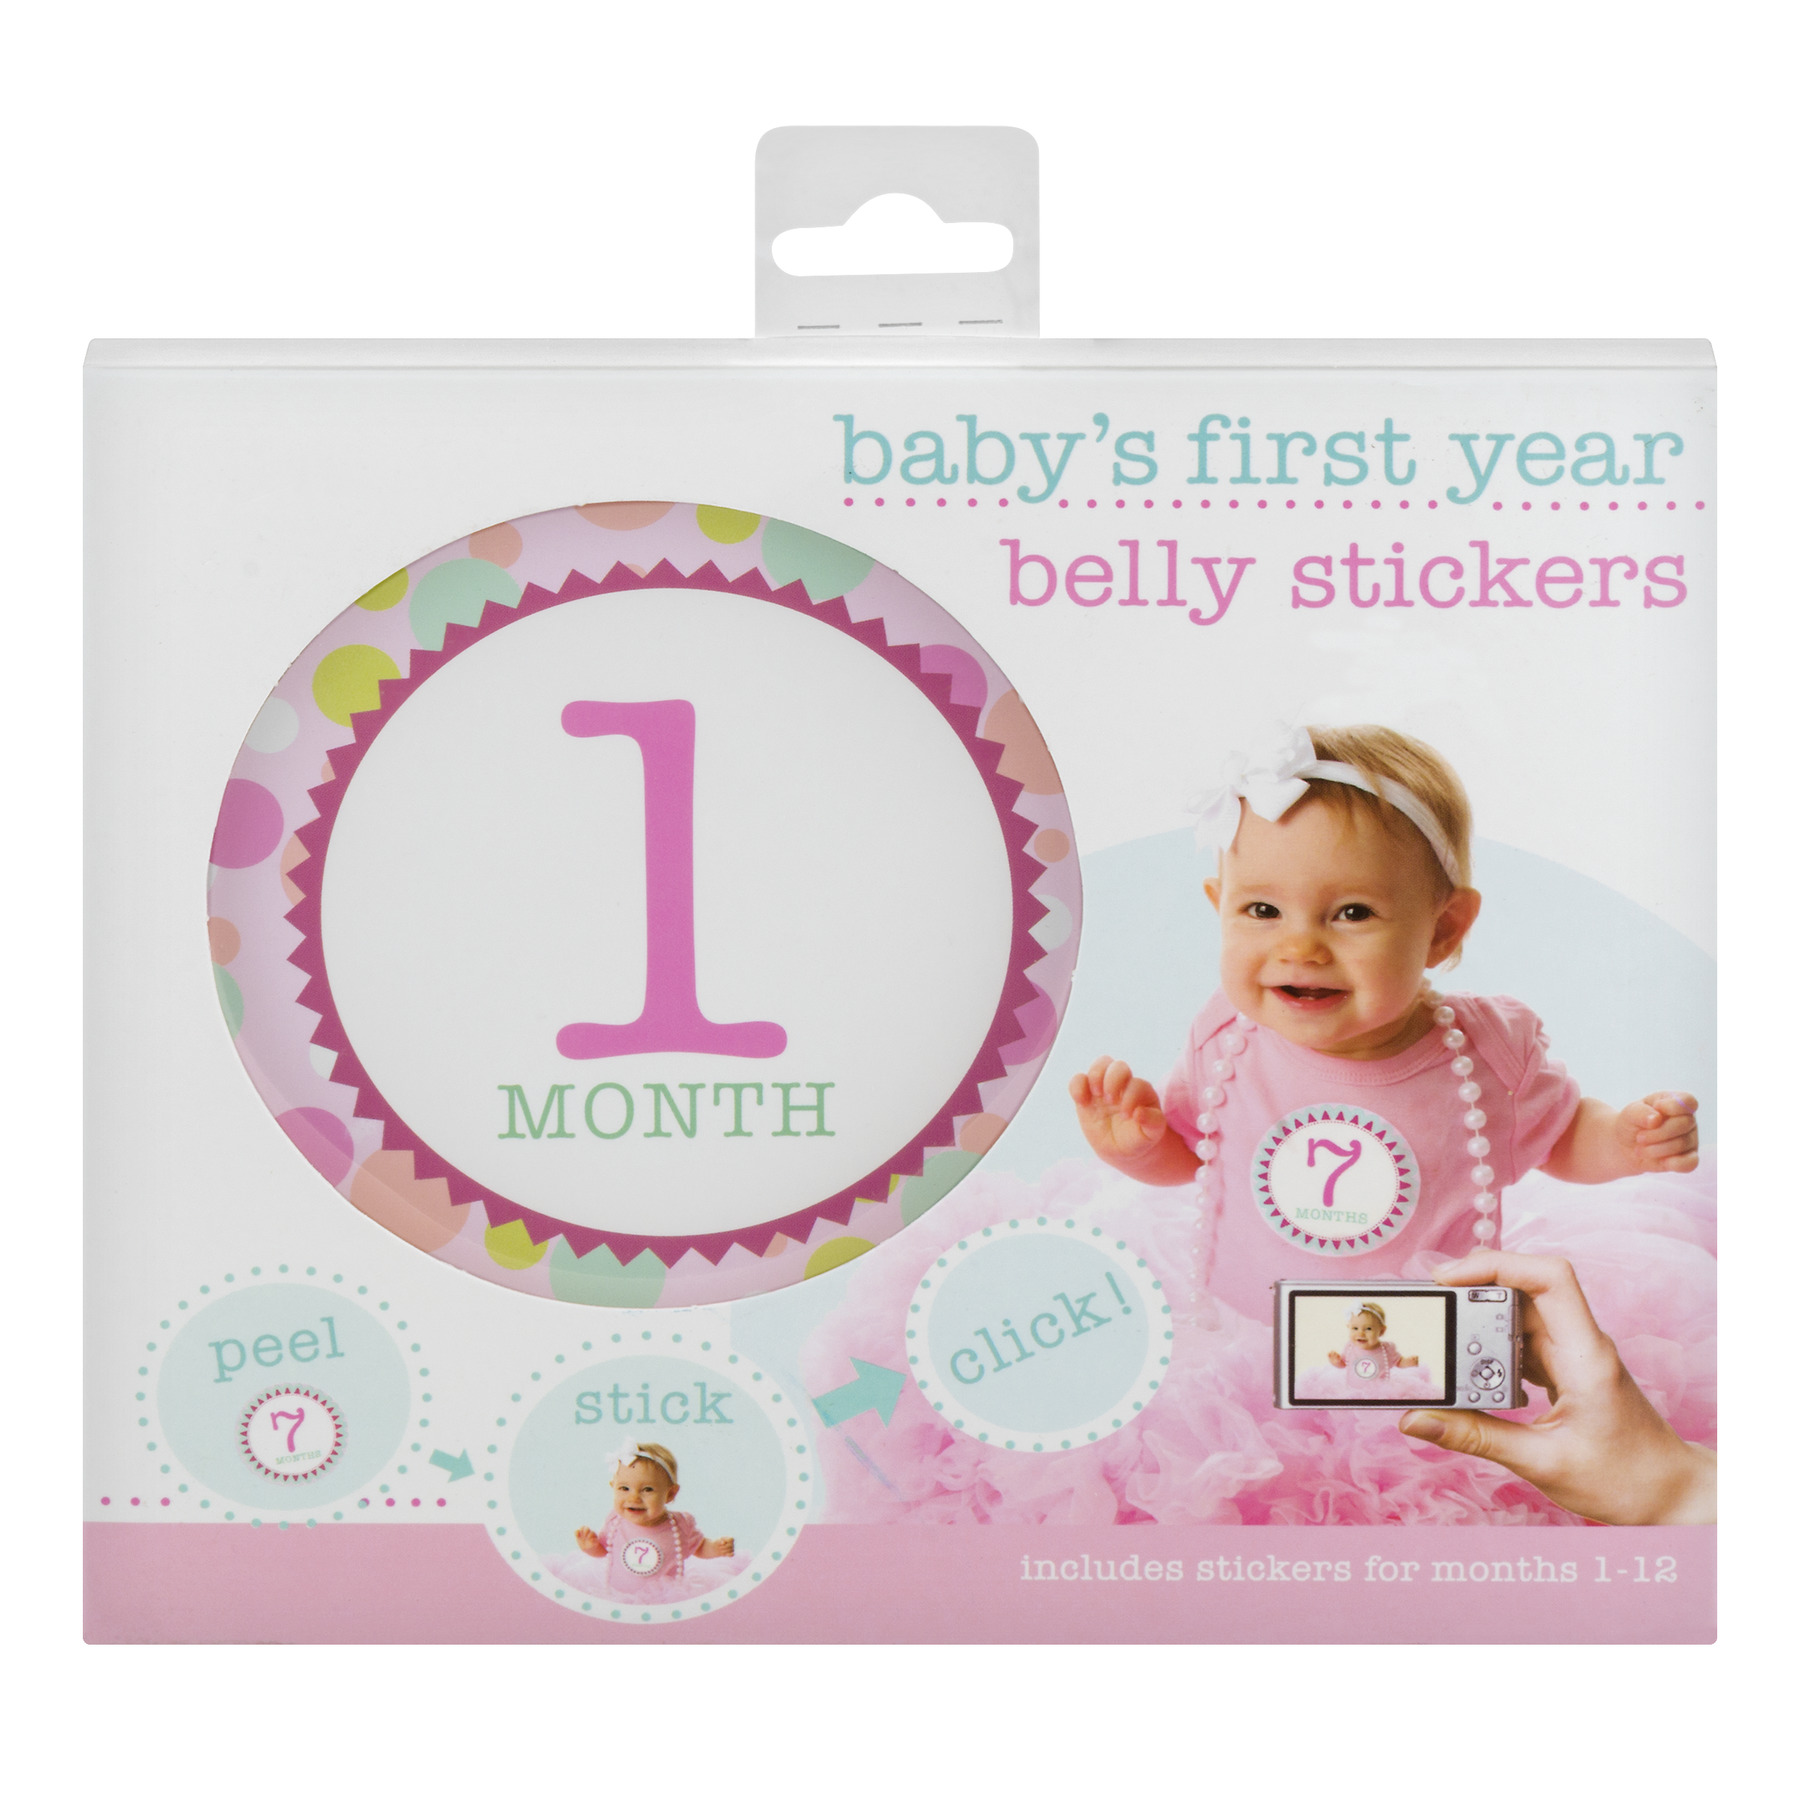 stepping stones baby s first year belly stickers 12 ct12 0 ct